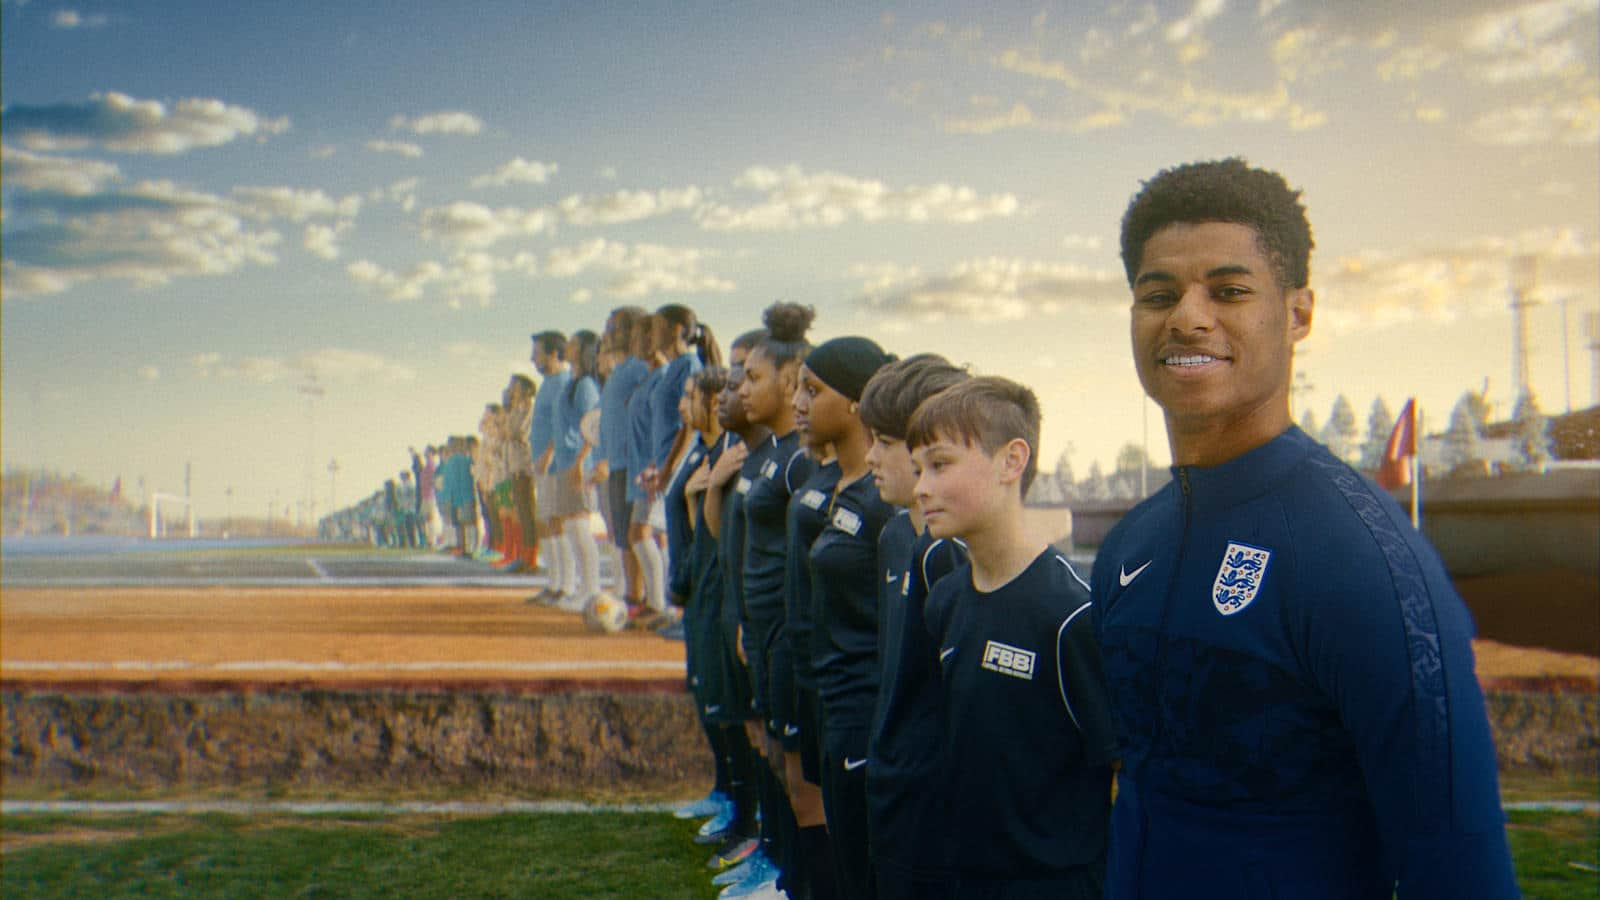 Nike Mapping Out Football's New Landscape